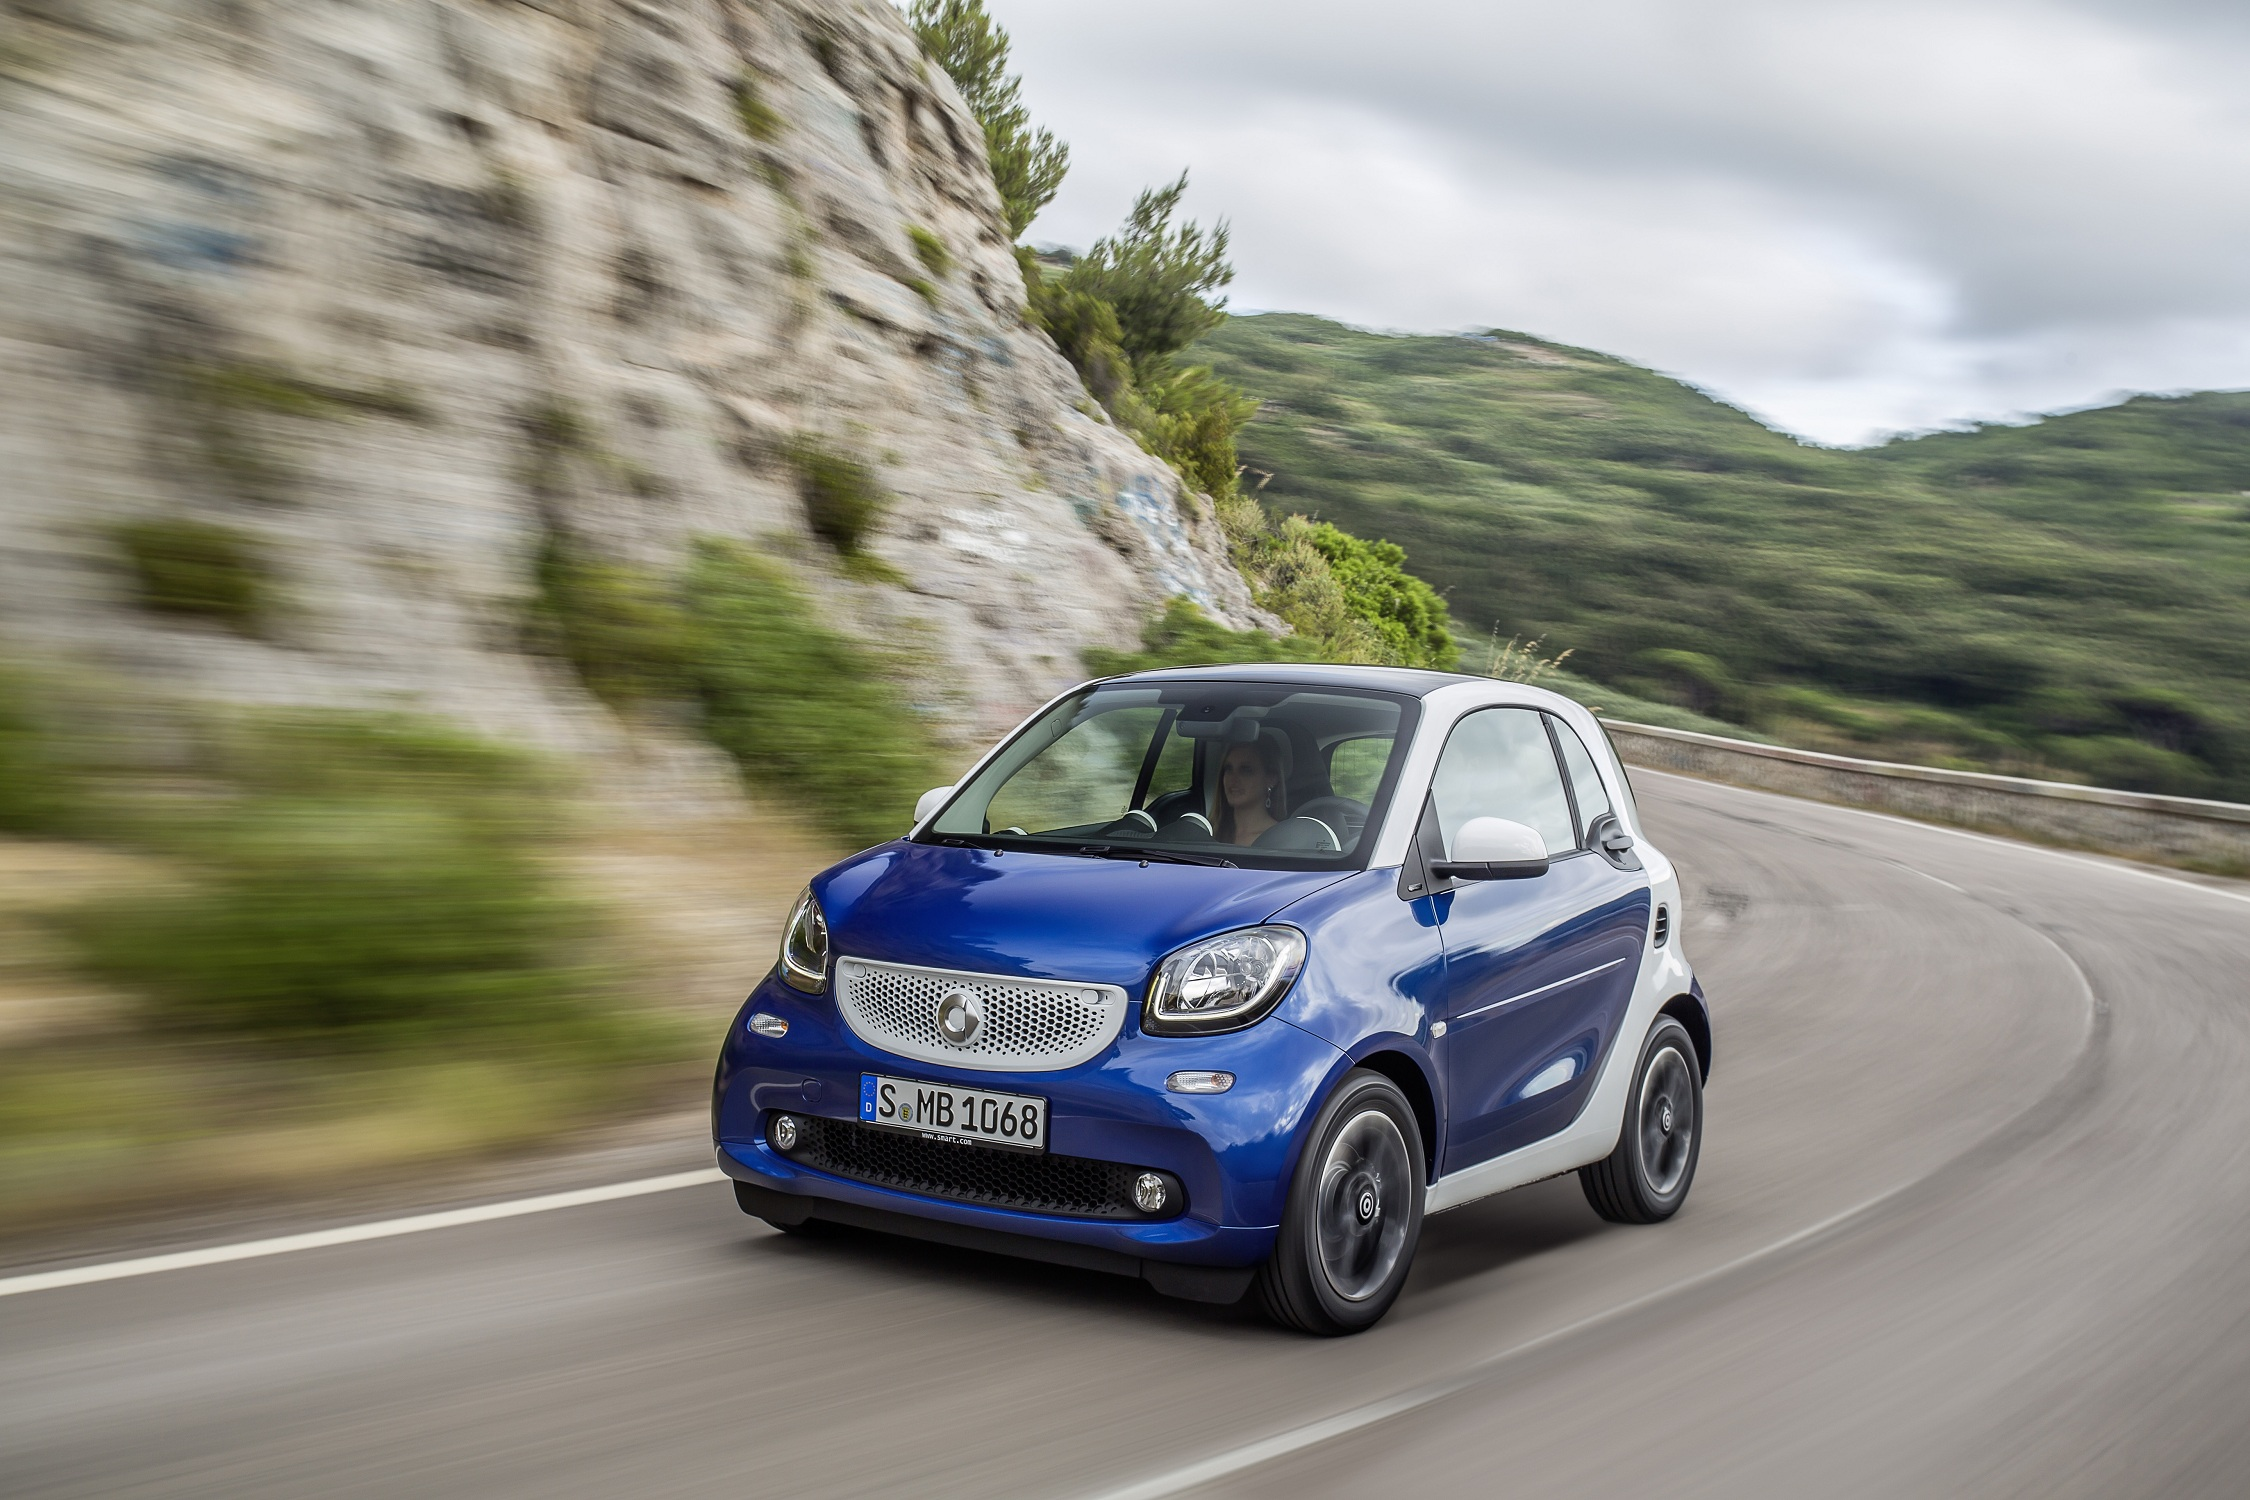 The new Smart ForTwo 2014 with dual clutch transmission